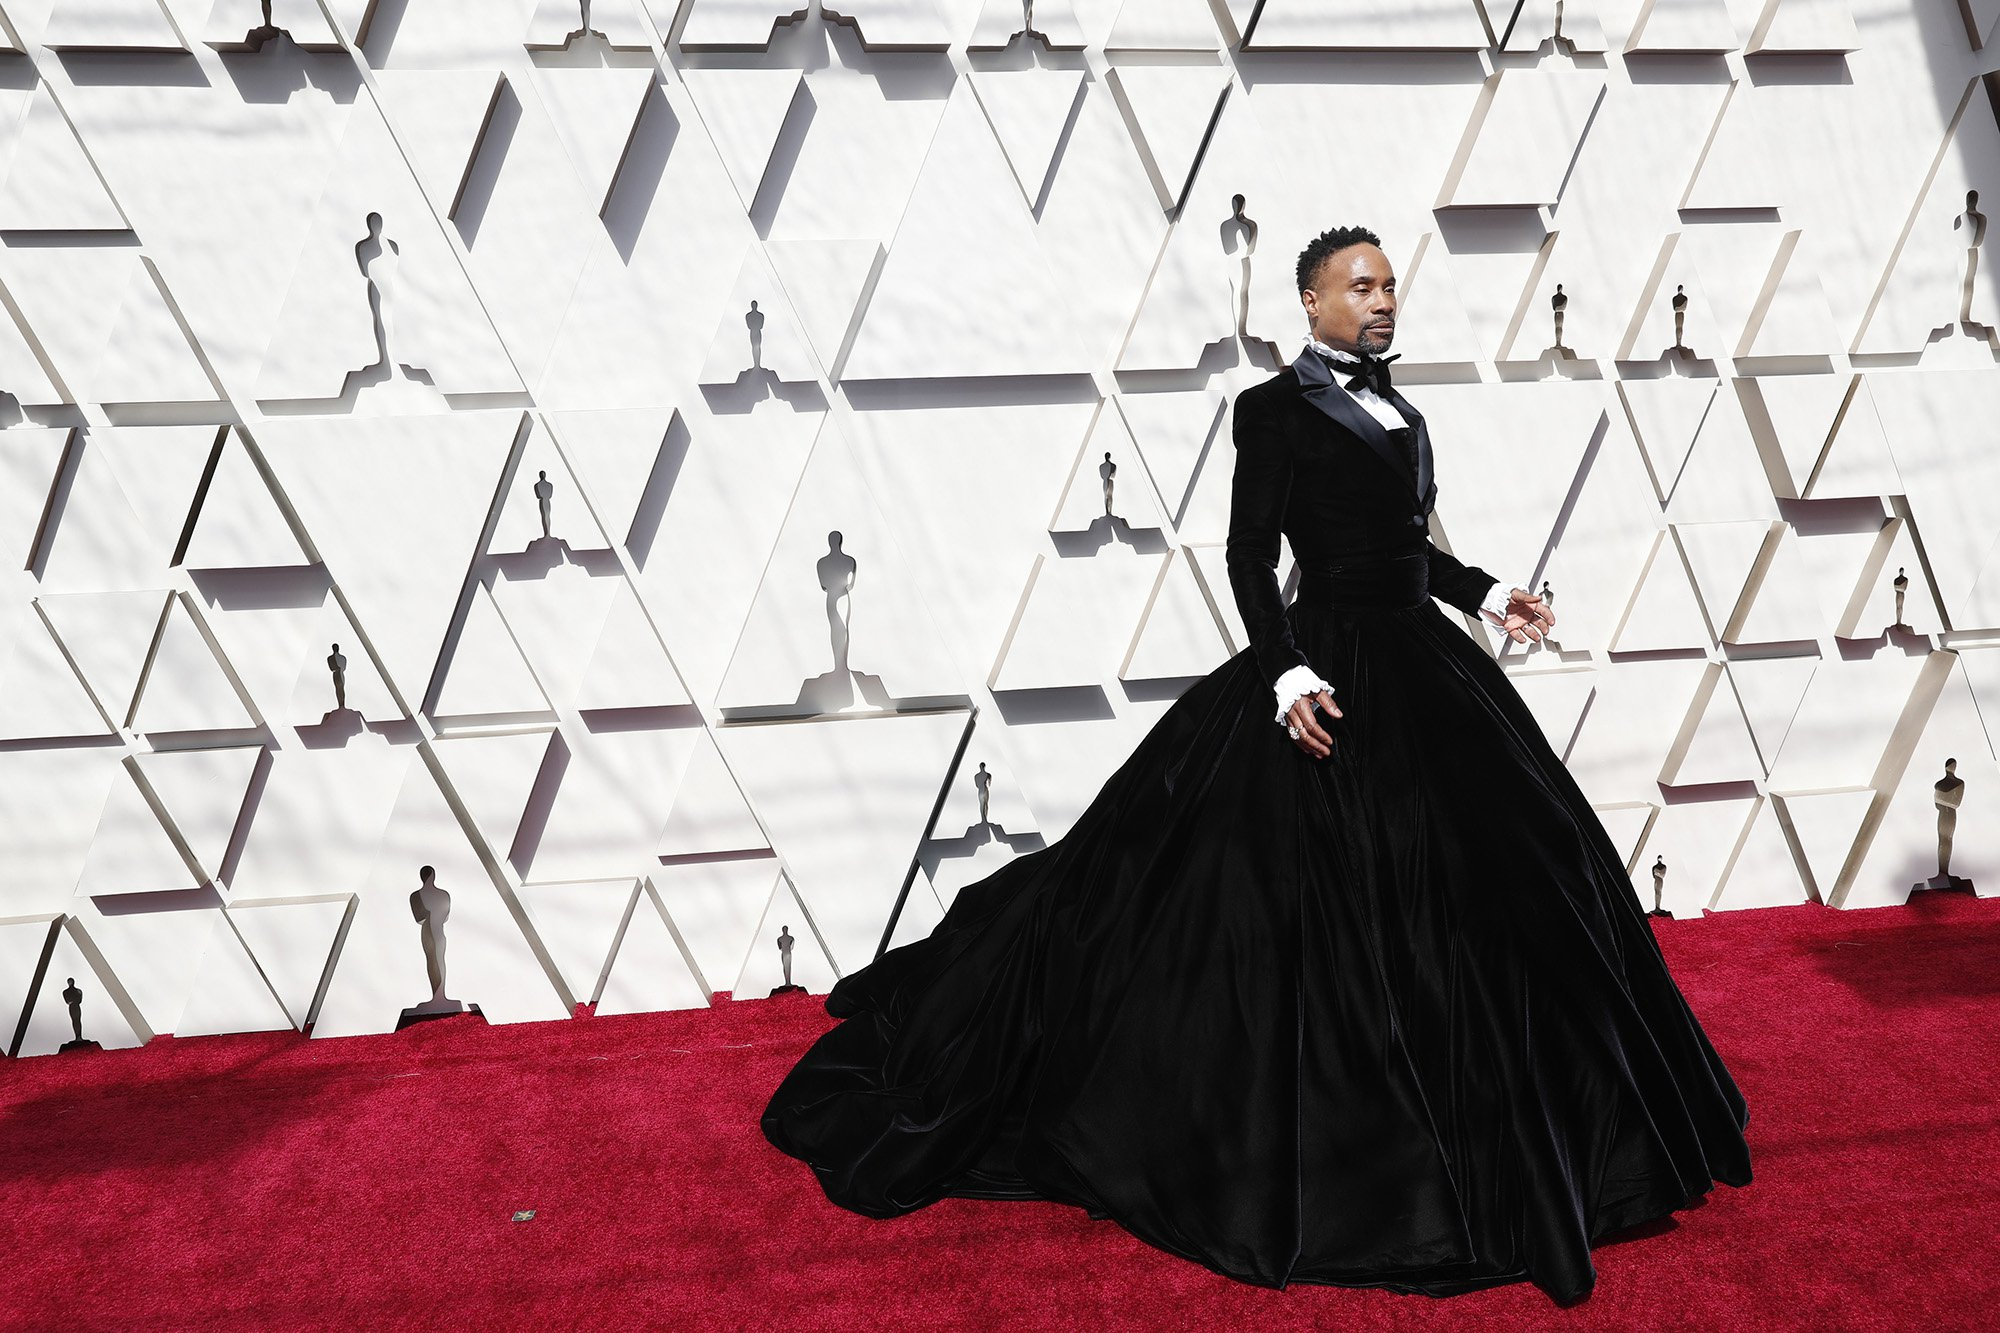 Amalgamation of Billy Porter at the Oscars Red Carpet 2019 / Getty Images